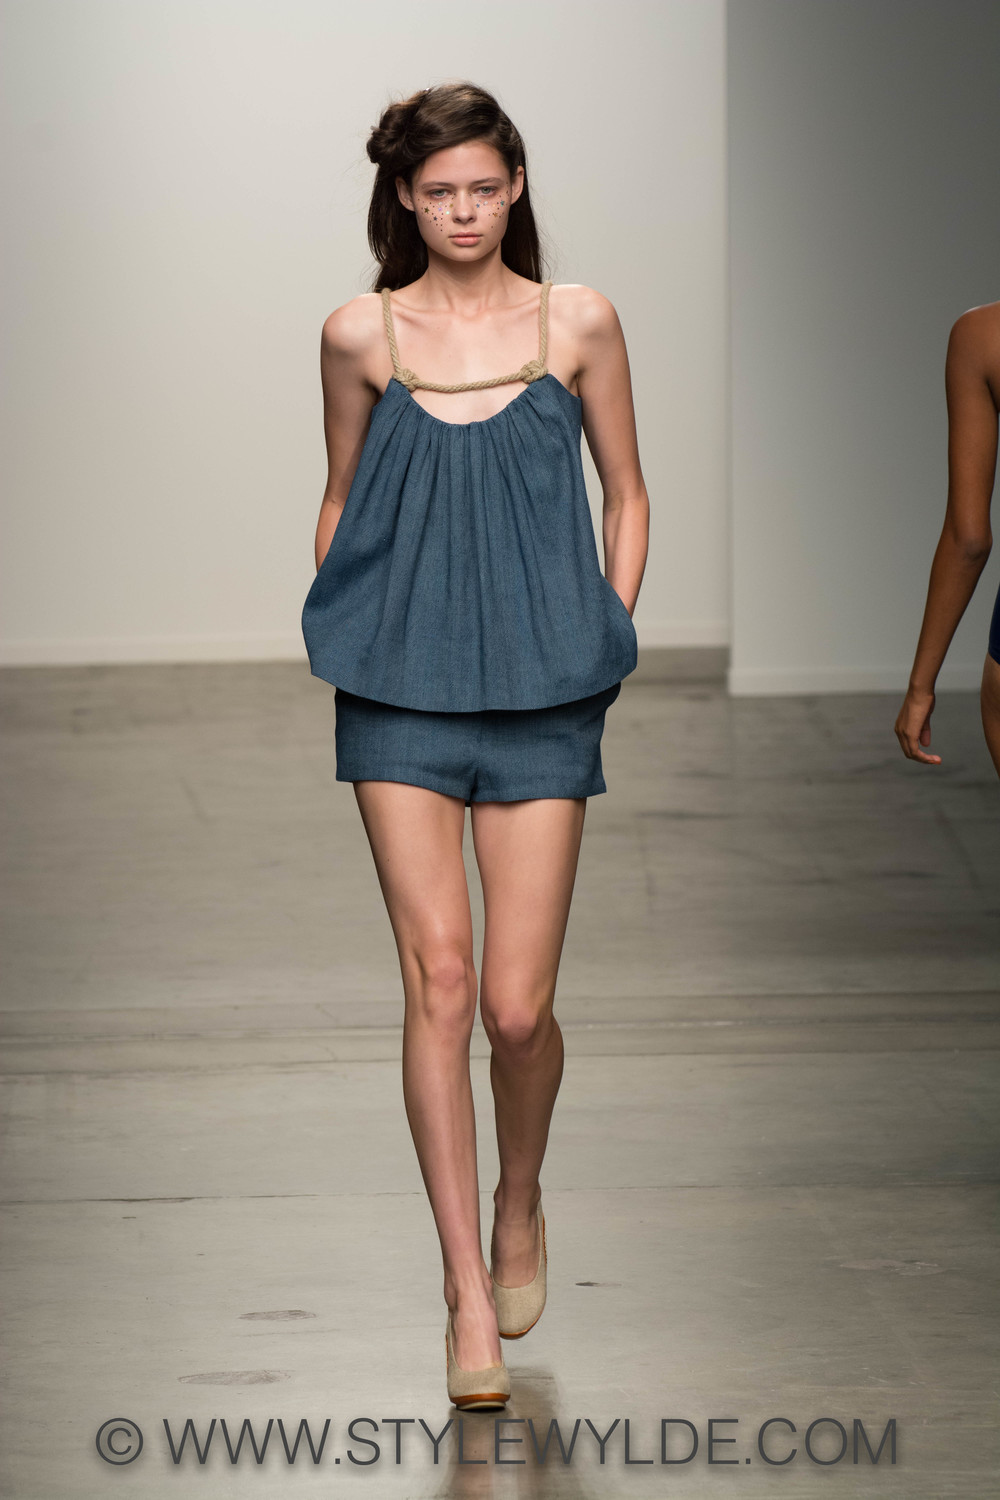 StyleWylde_adetacher_FOH_SS15_sw (25 of 37).jpg